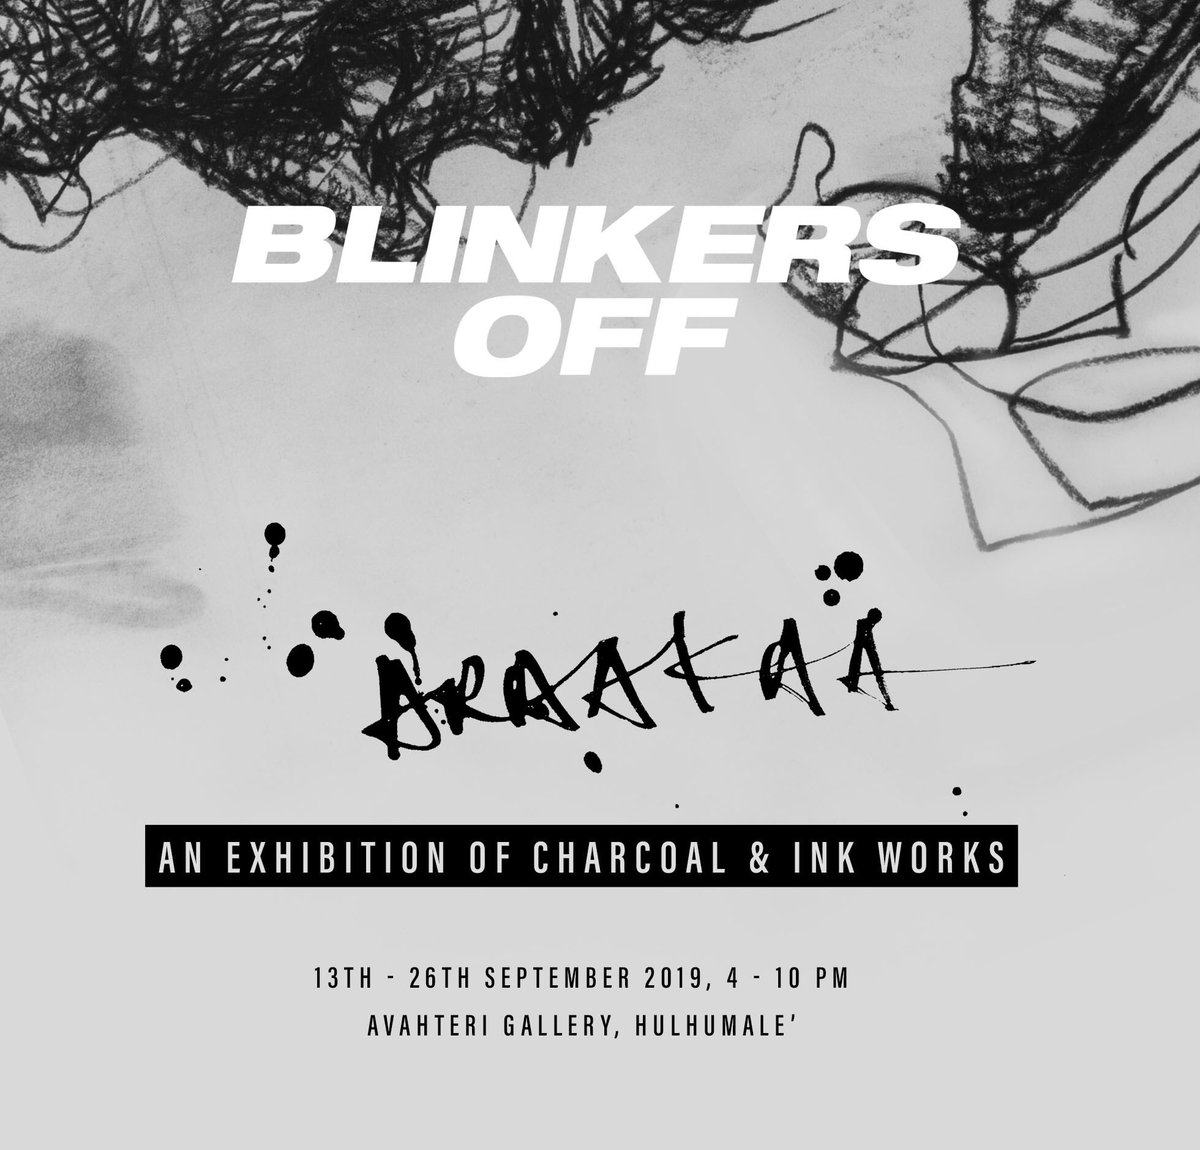 #BlinkersOff A solo exhibition by Araakaa